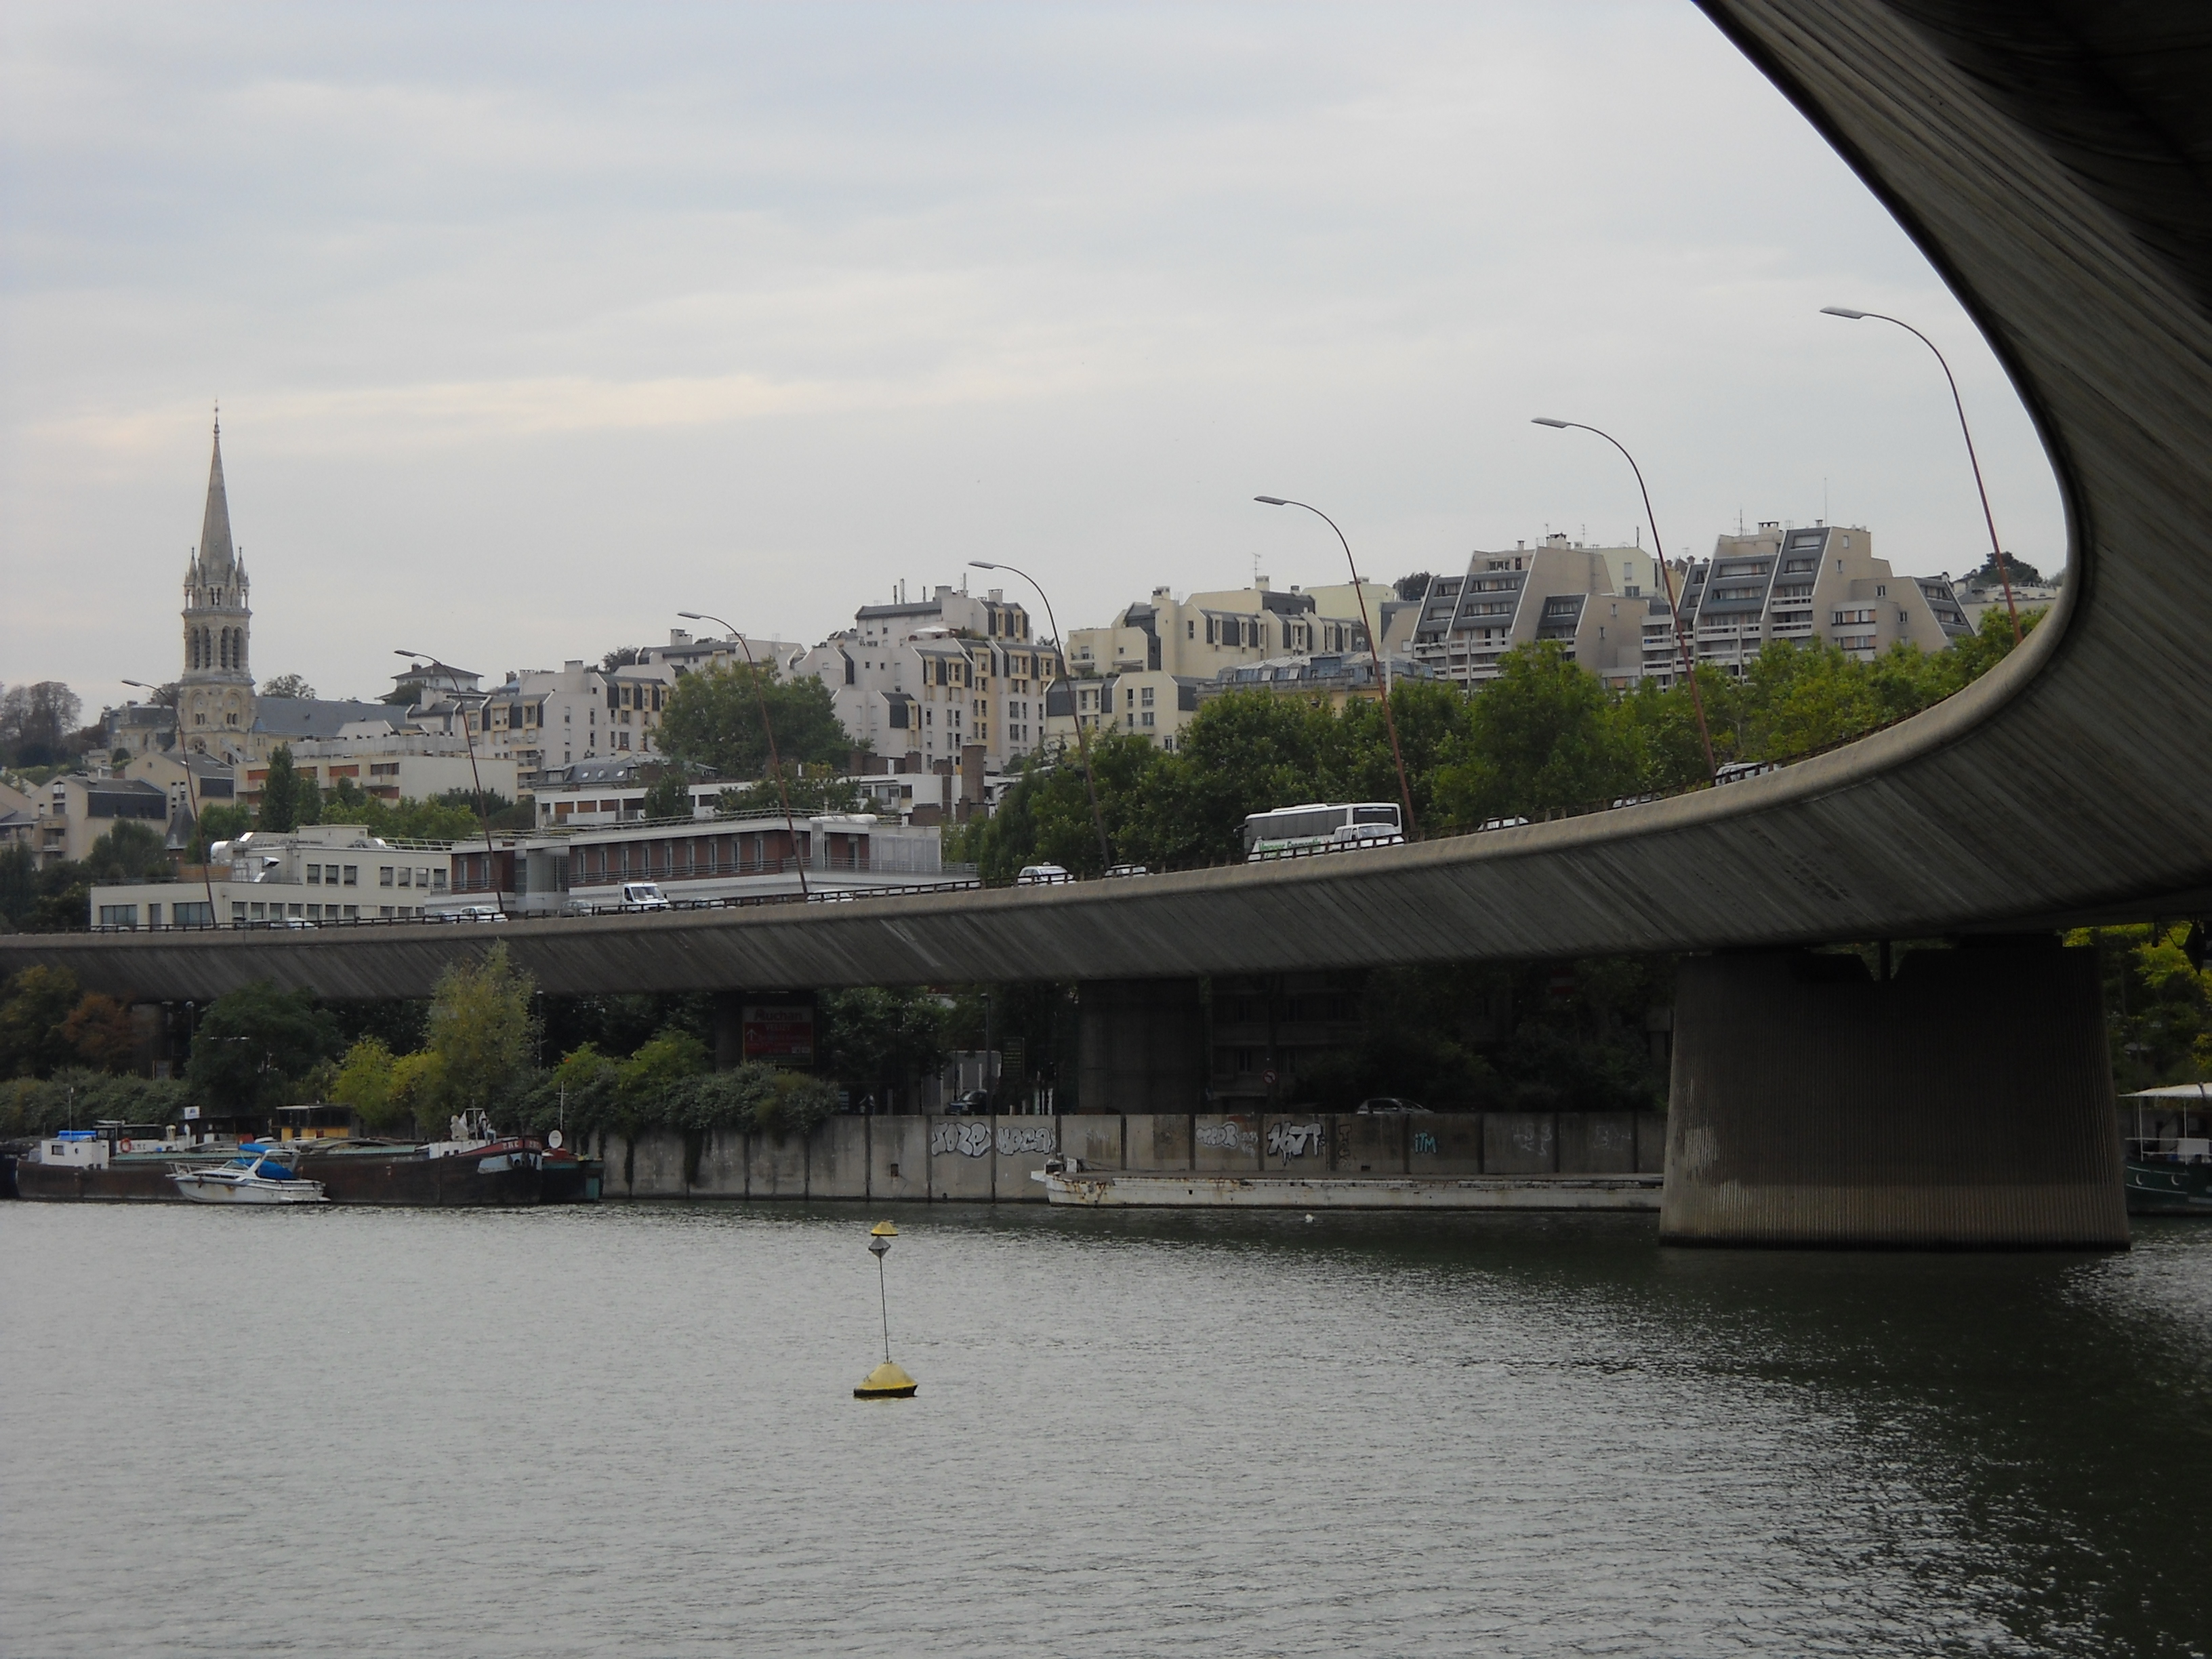 FileBoulogneBillancourt  SaintCloud  A13 Bridge  2